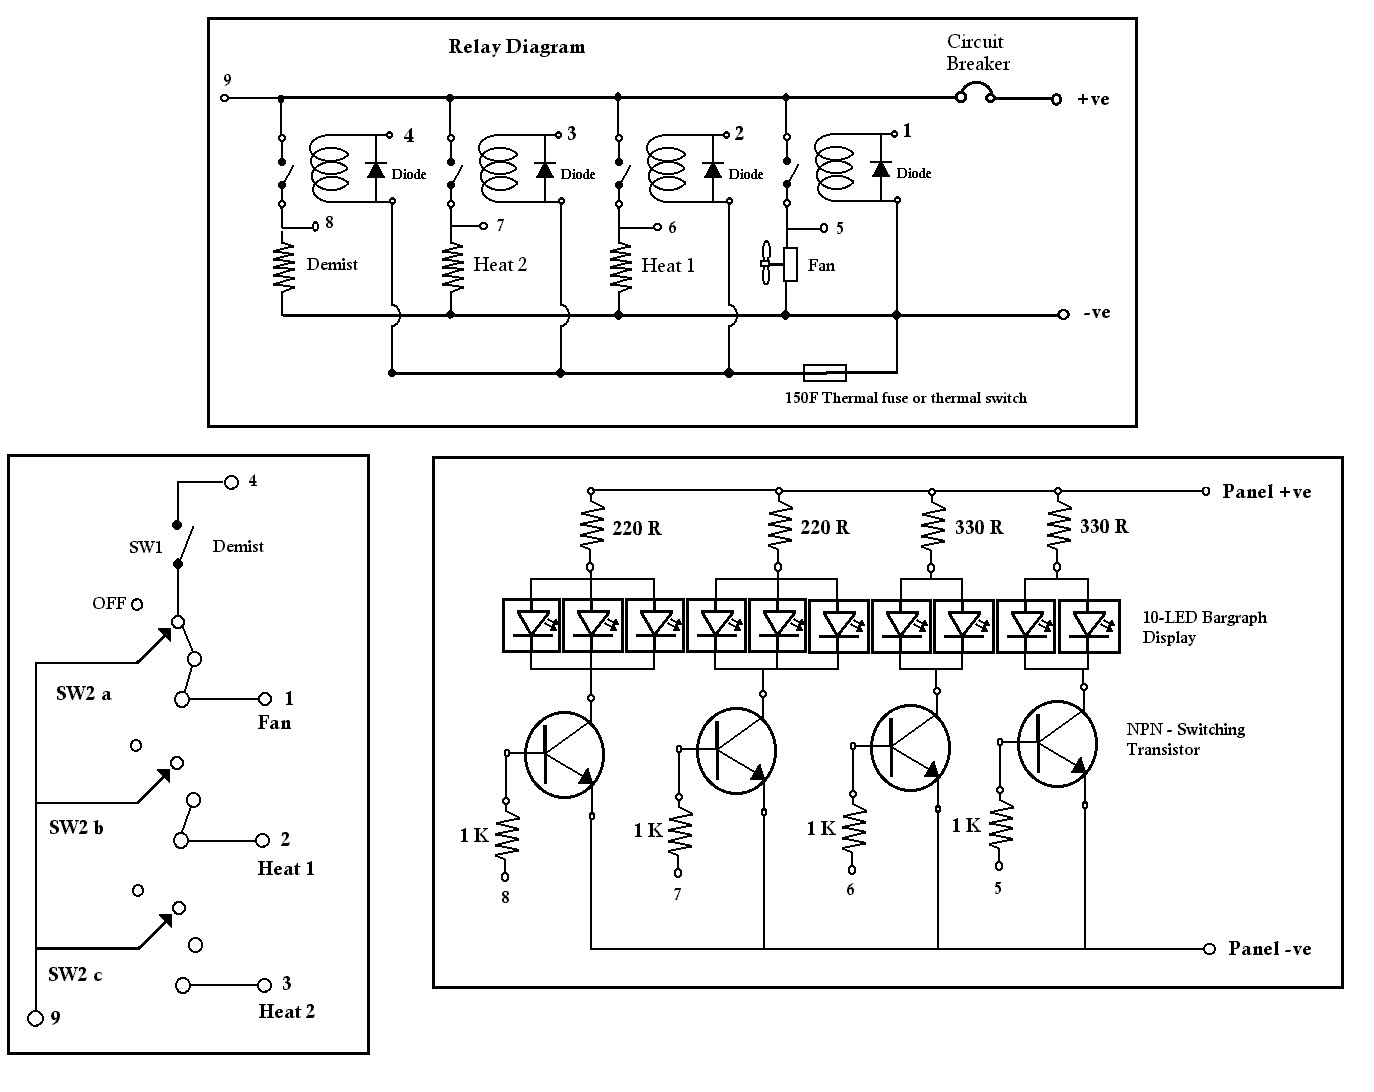 wiring diagram for qmark heater lakewood heater wiring www Wiring 220 Volt Baseboard Heater at Wiring Diagram For Qmark Heater Cwh3404b